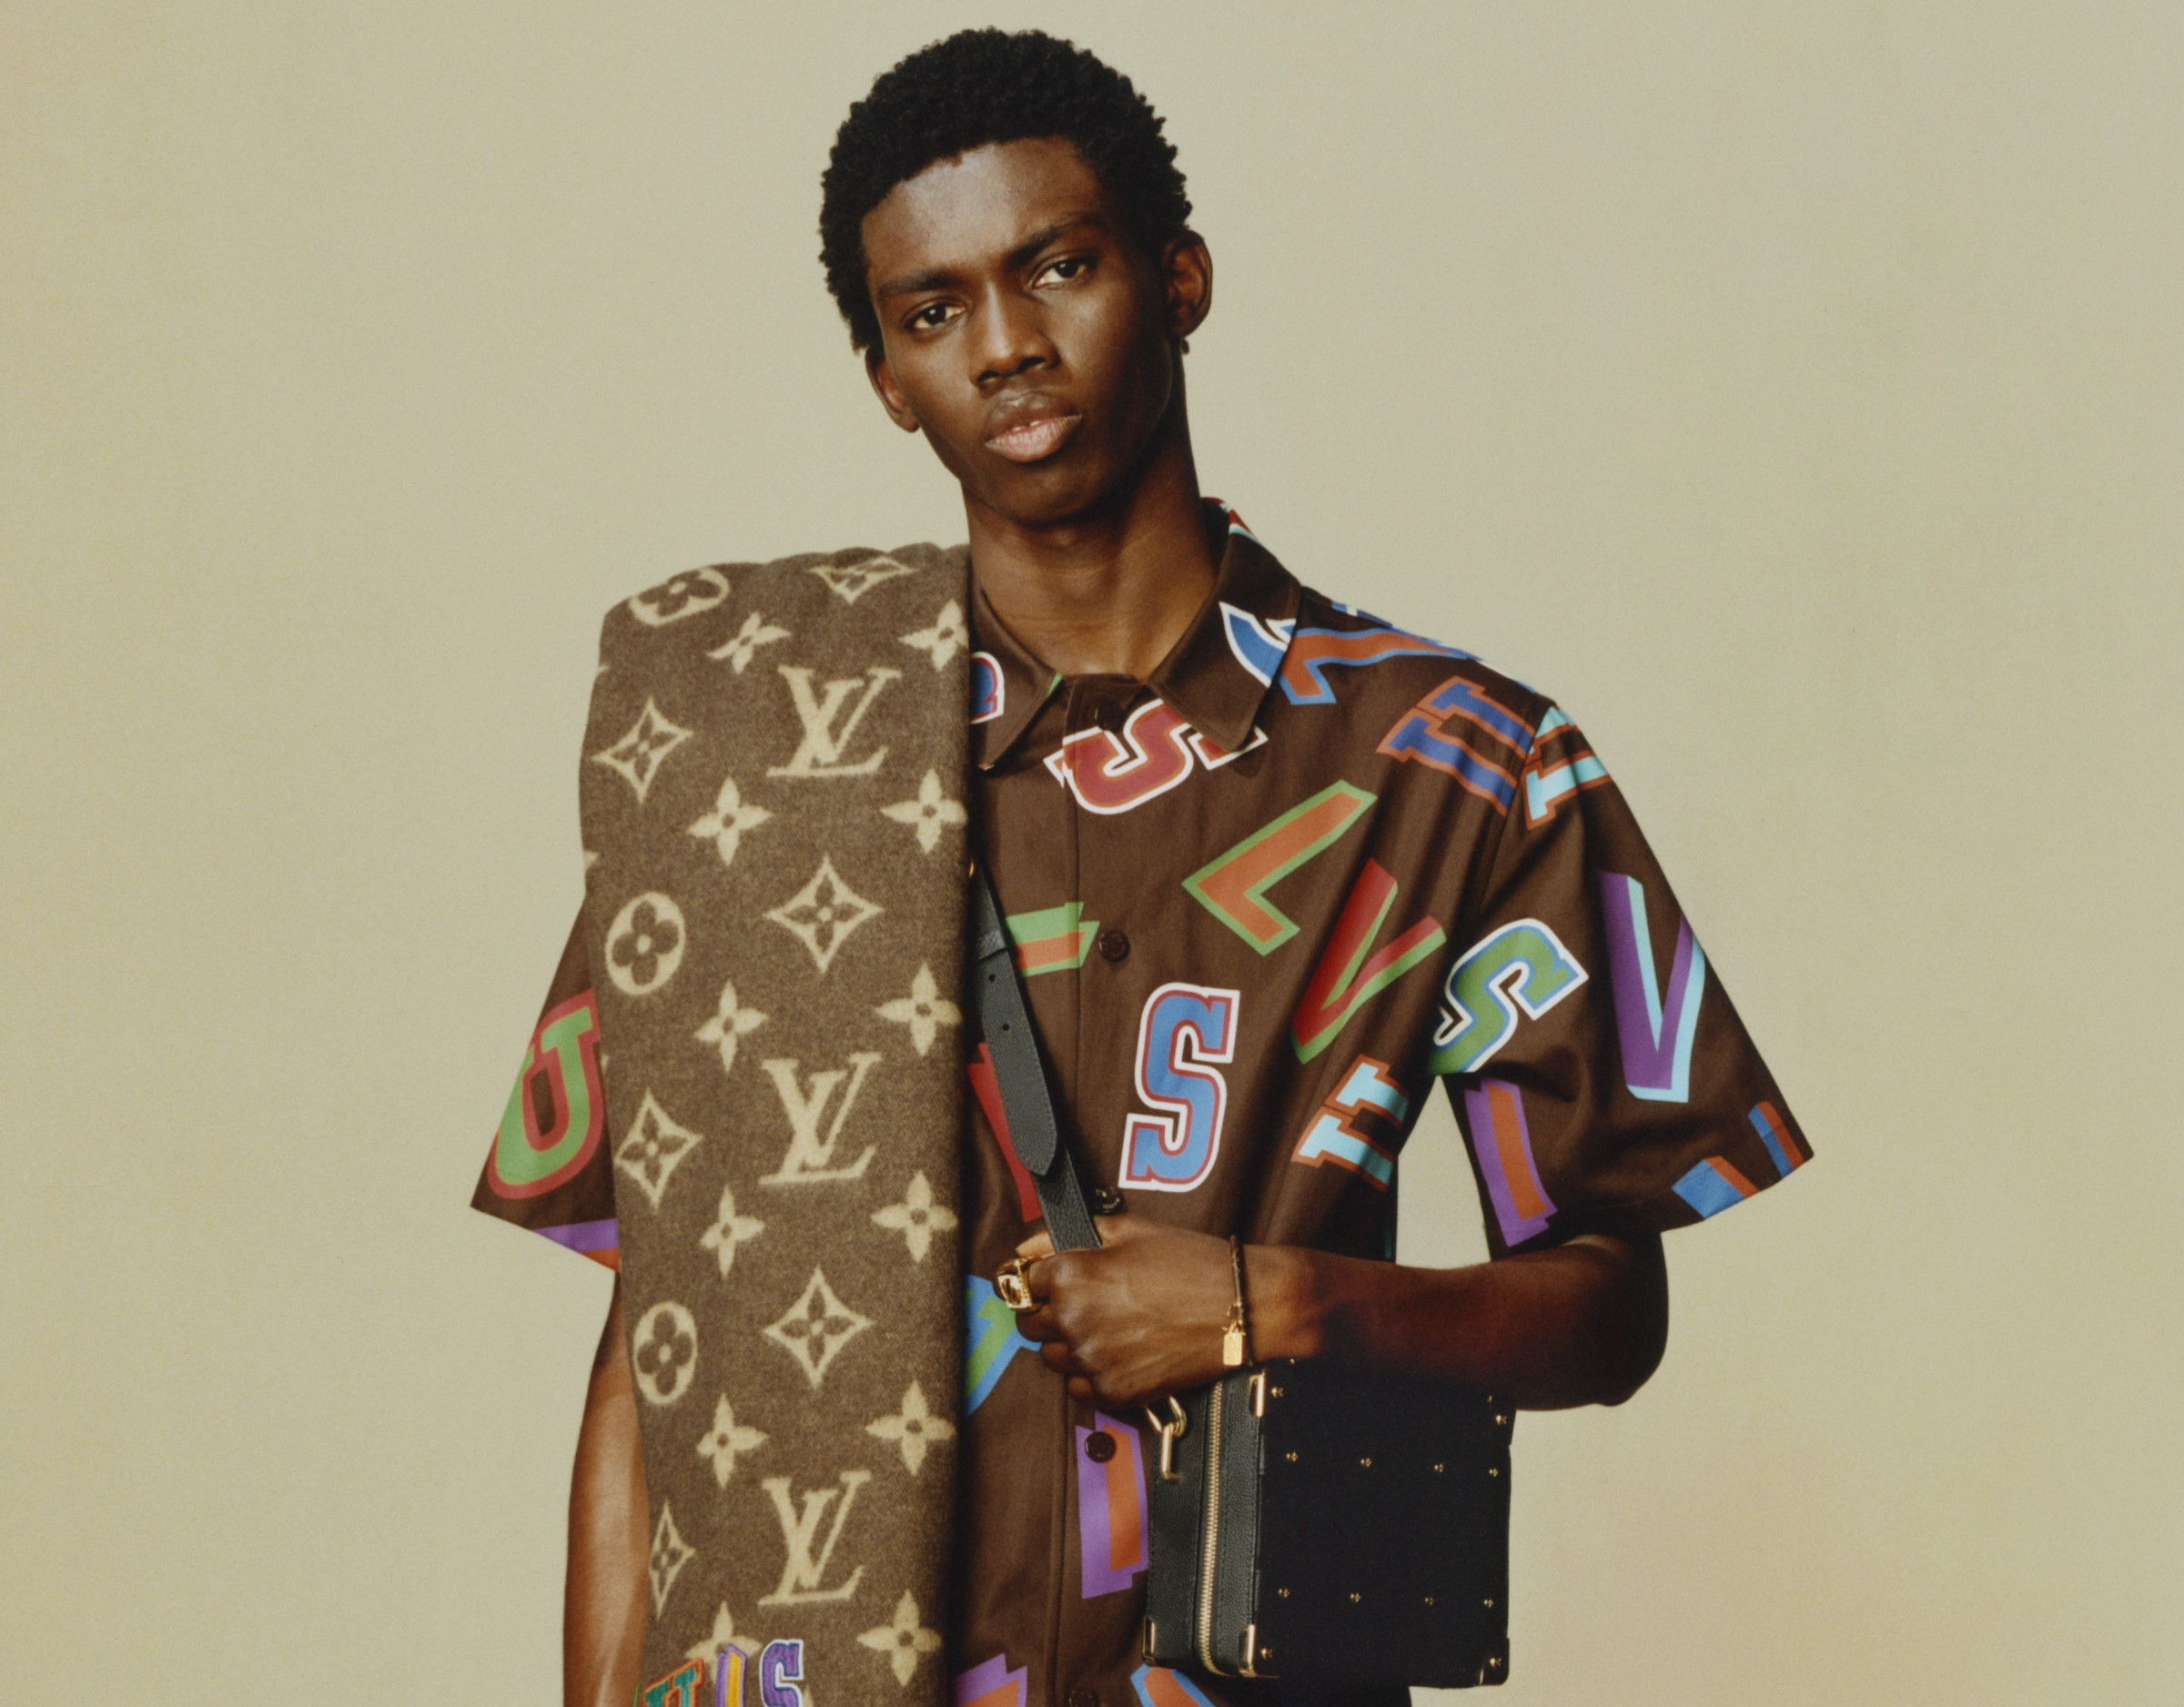 The Second Louis Vuitton x NBA Capsule Collection Is Launching on May 28